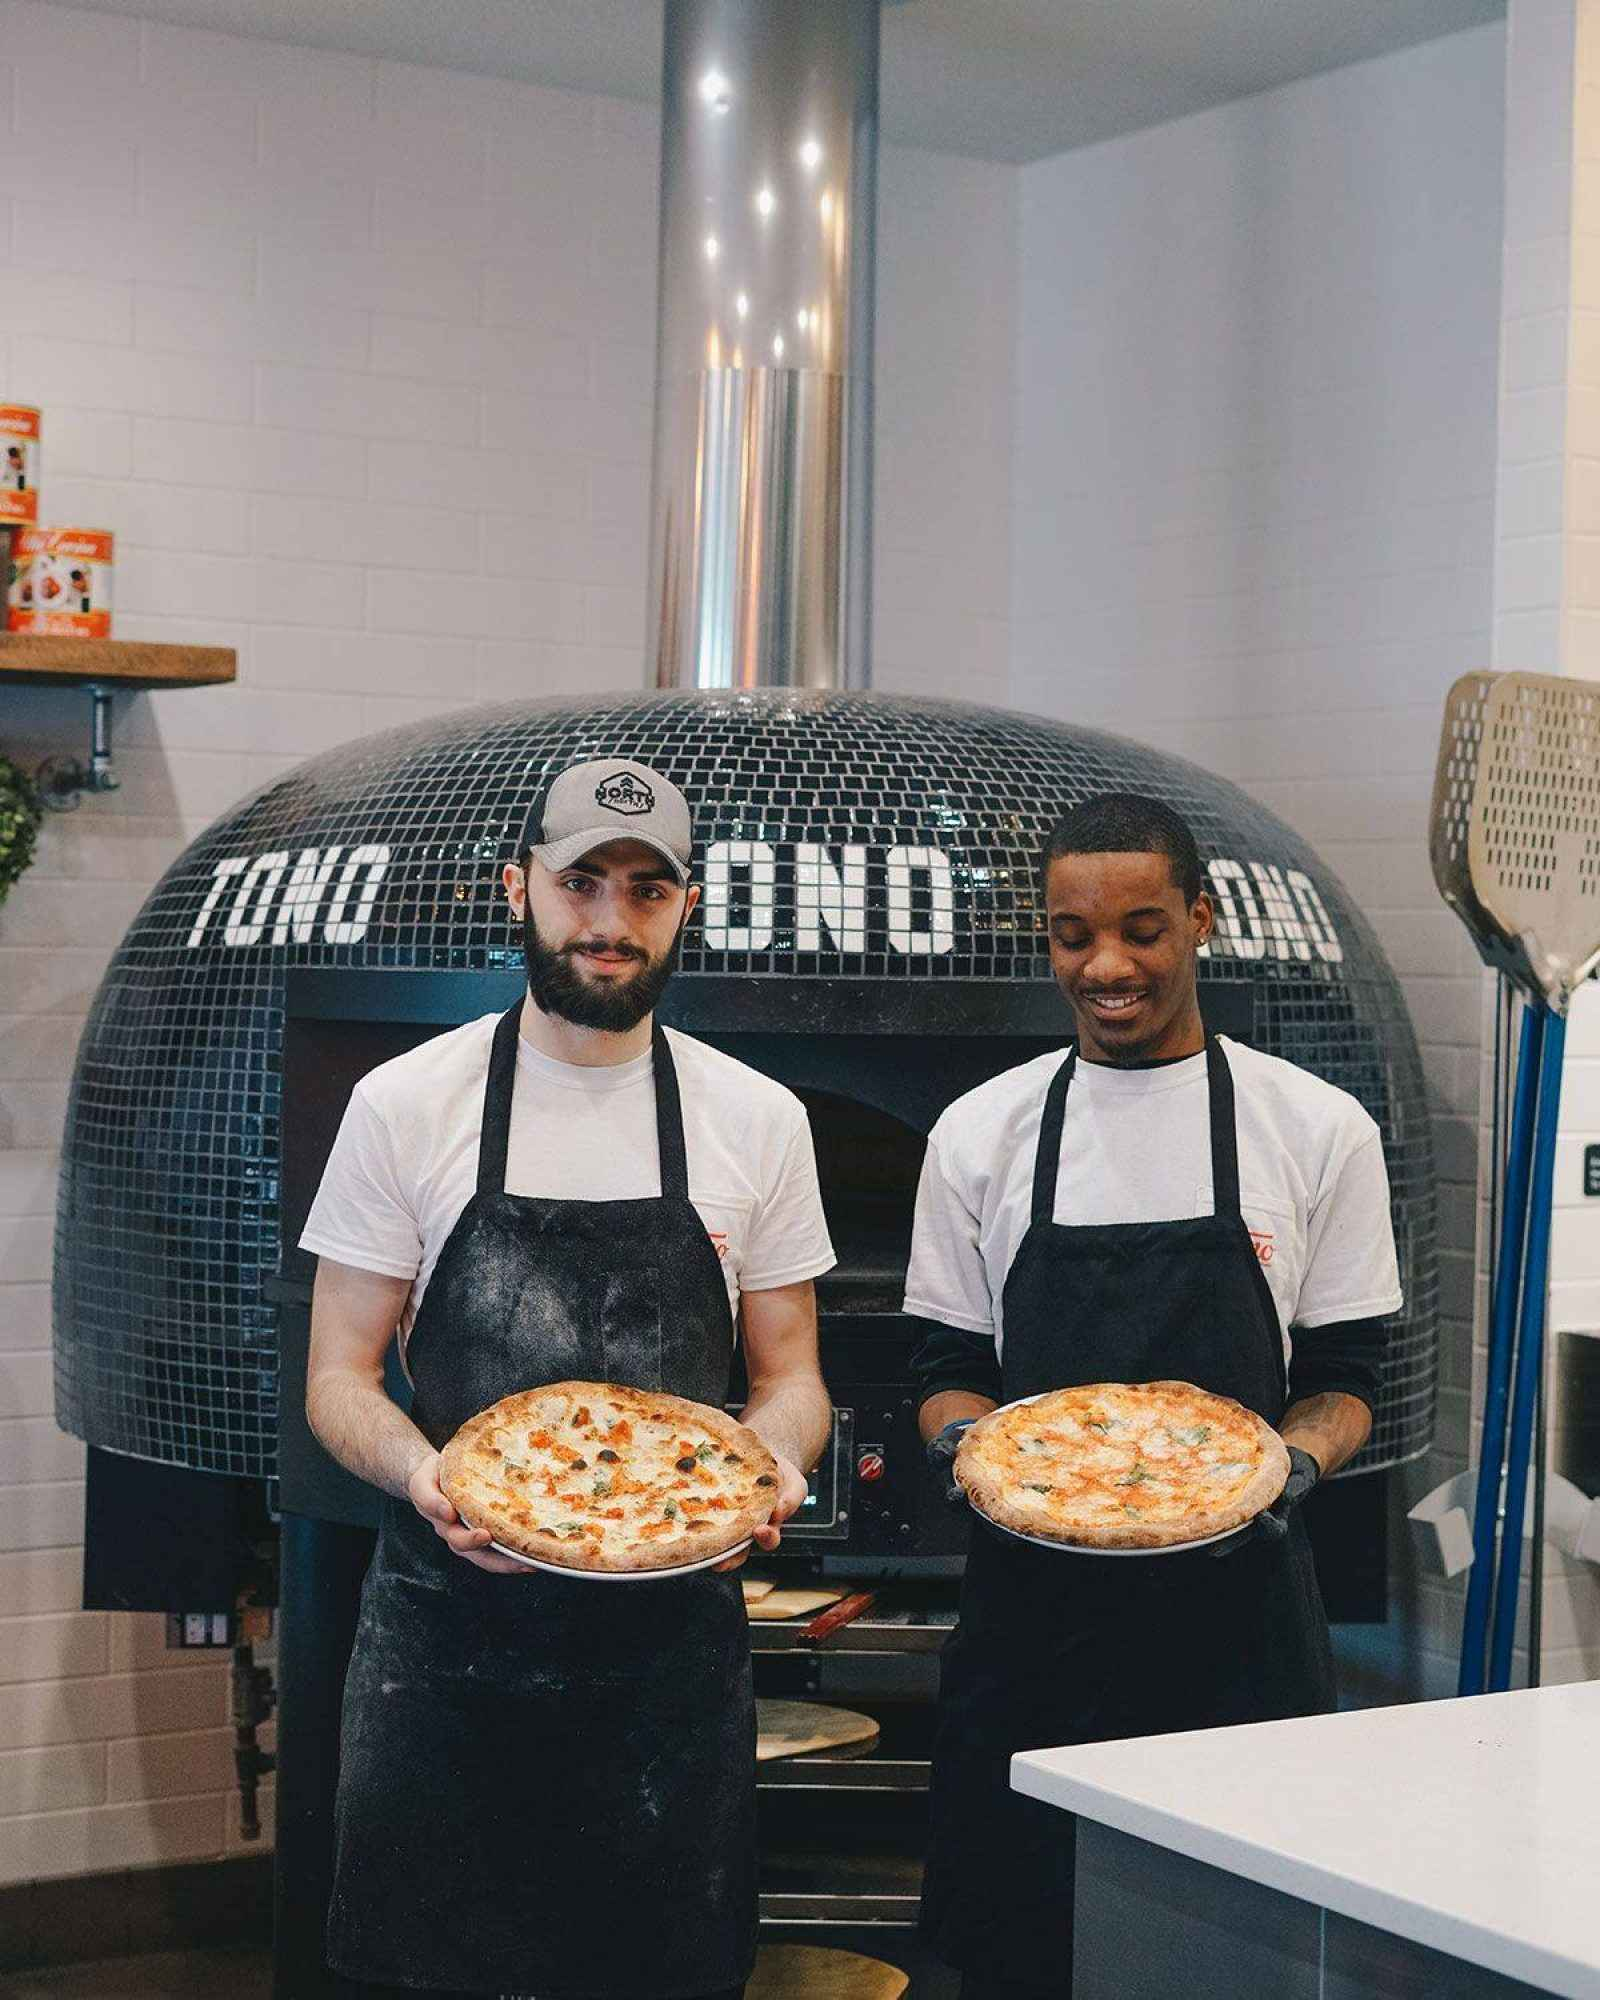 Two Tono employees standing in front of the Tono pizza oven holding pizzas